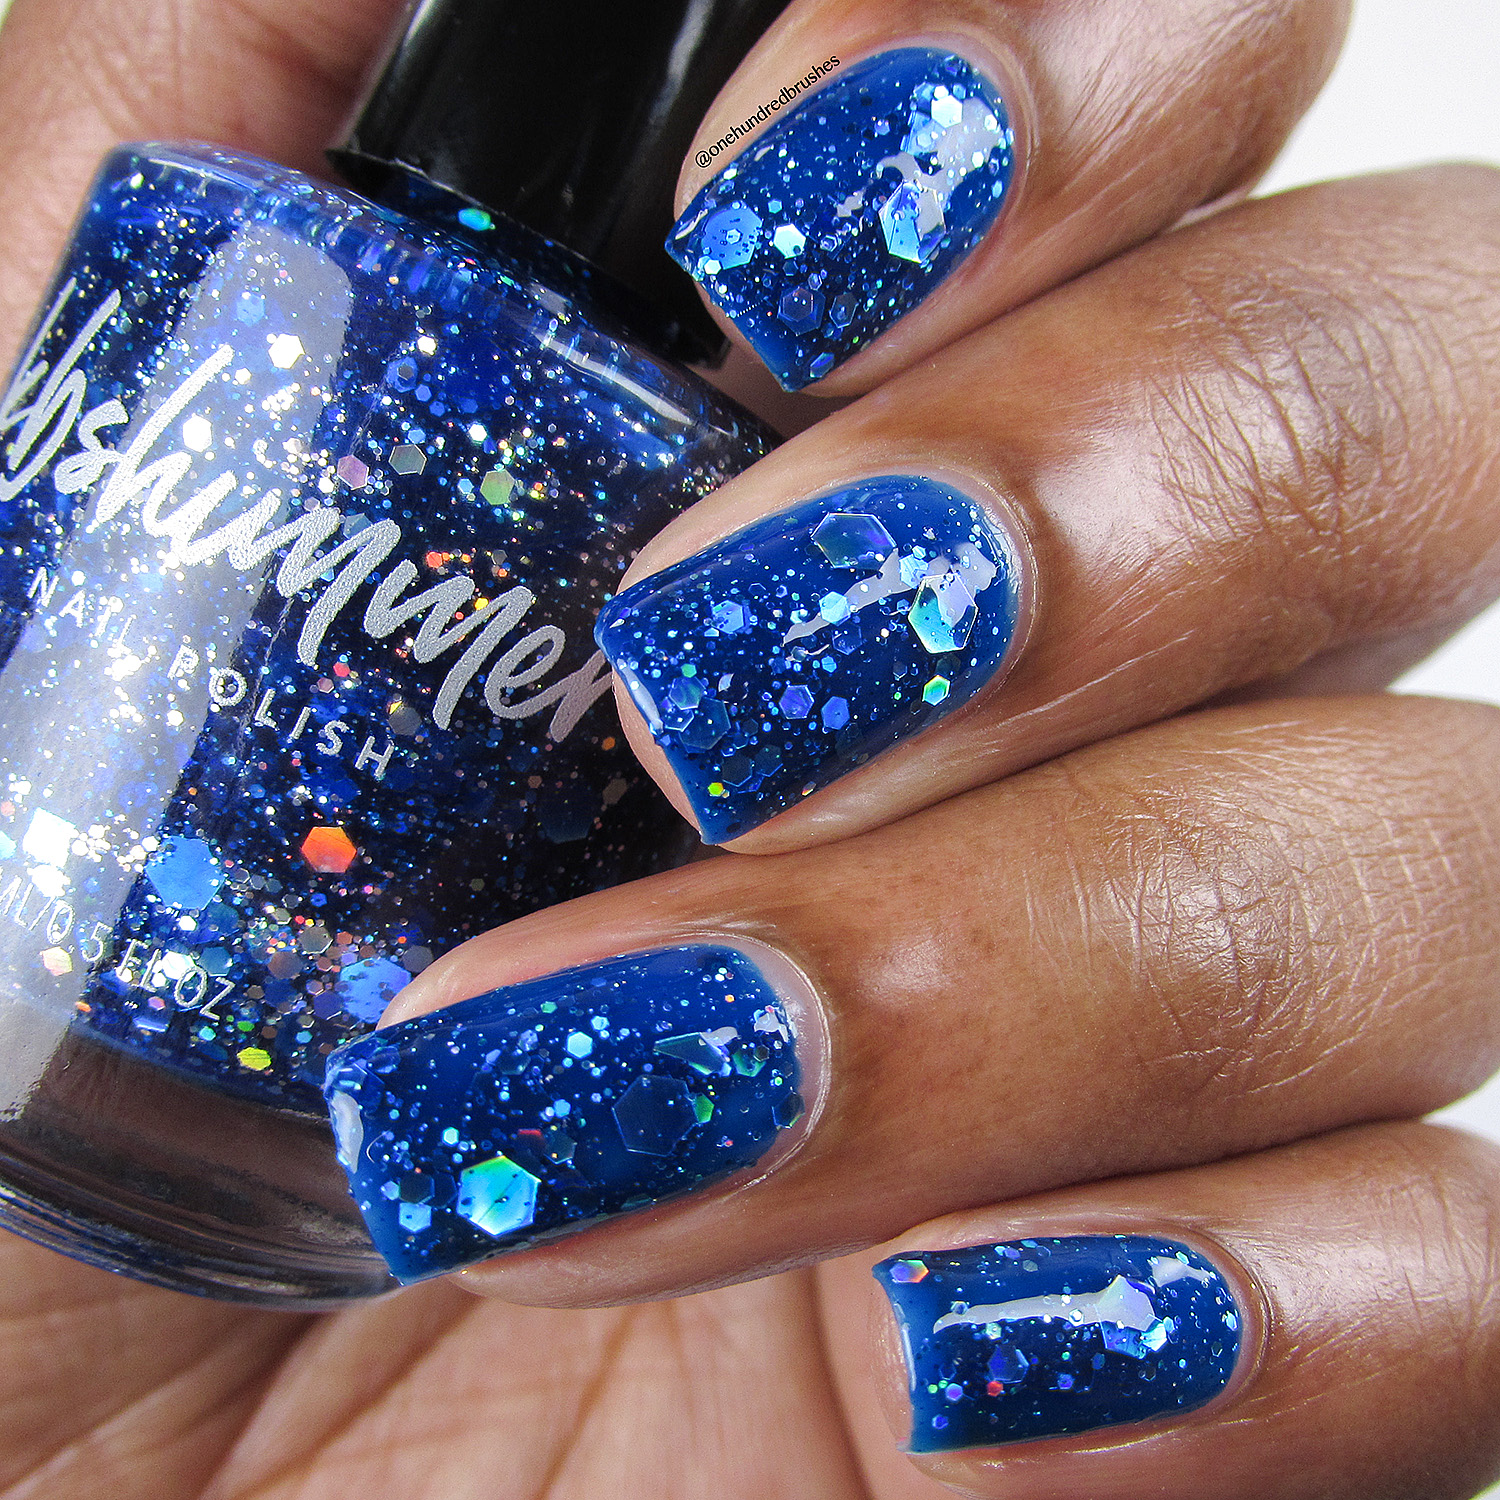 KBShimmer I Got A Crush On Blue Jelly Nail Polish